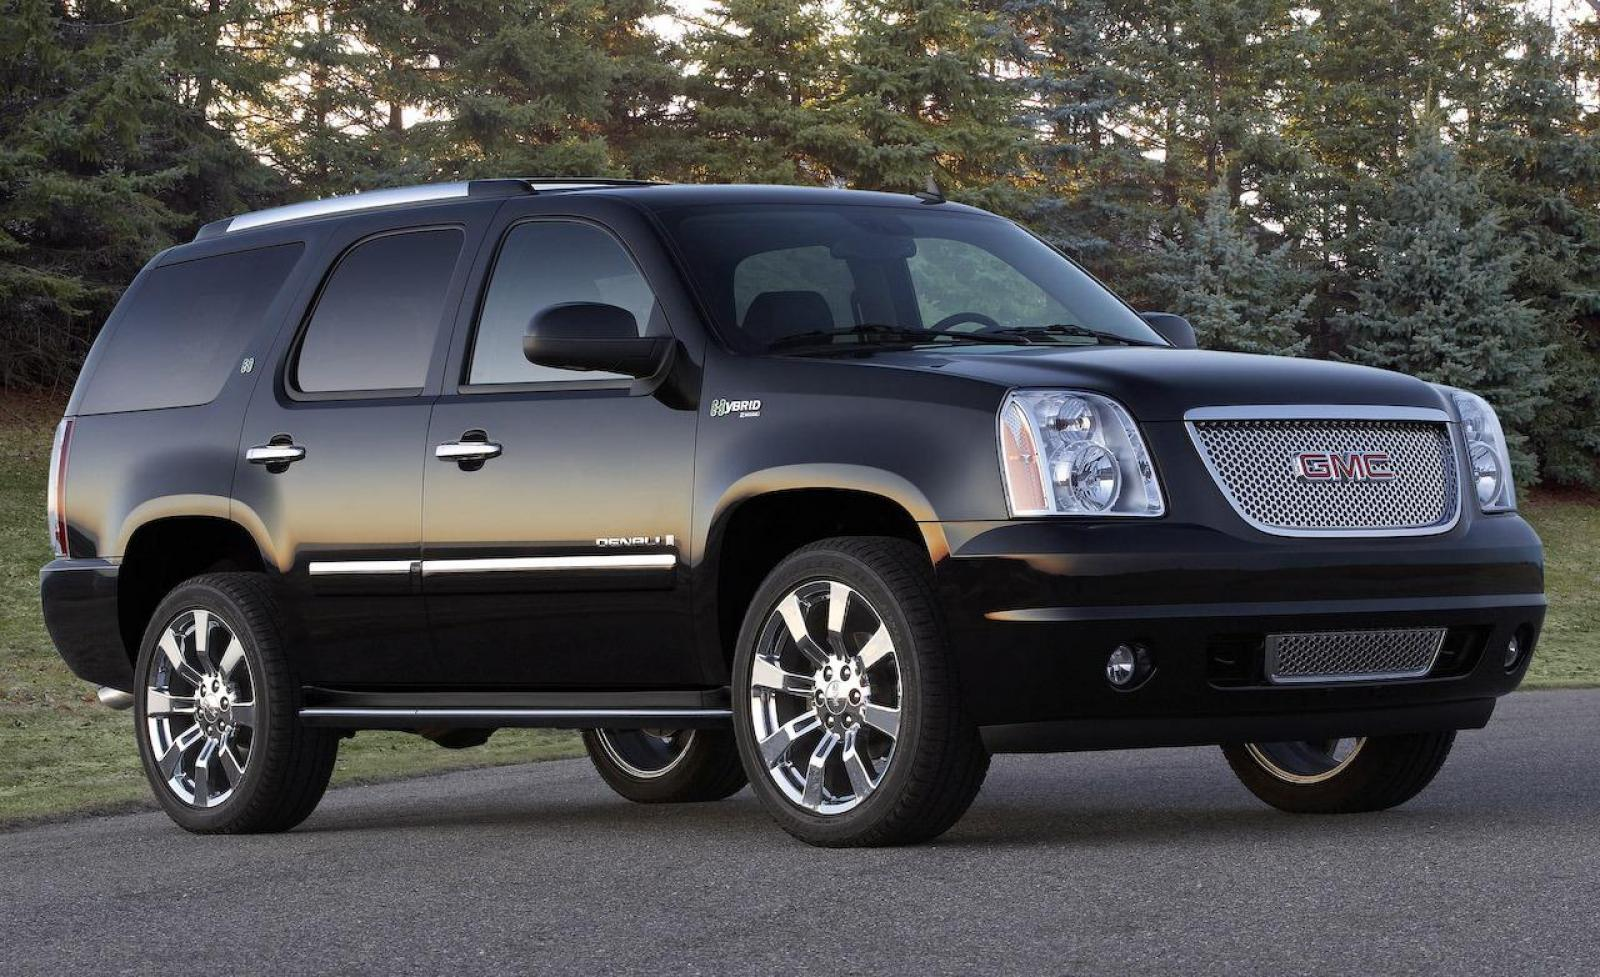 2008 gmc yukon hybrid information and photos zombiedrive. Black Bedroom Furniture Sets. Home Design Ideas